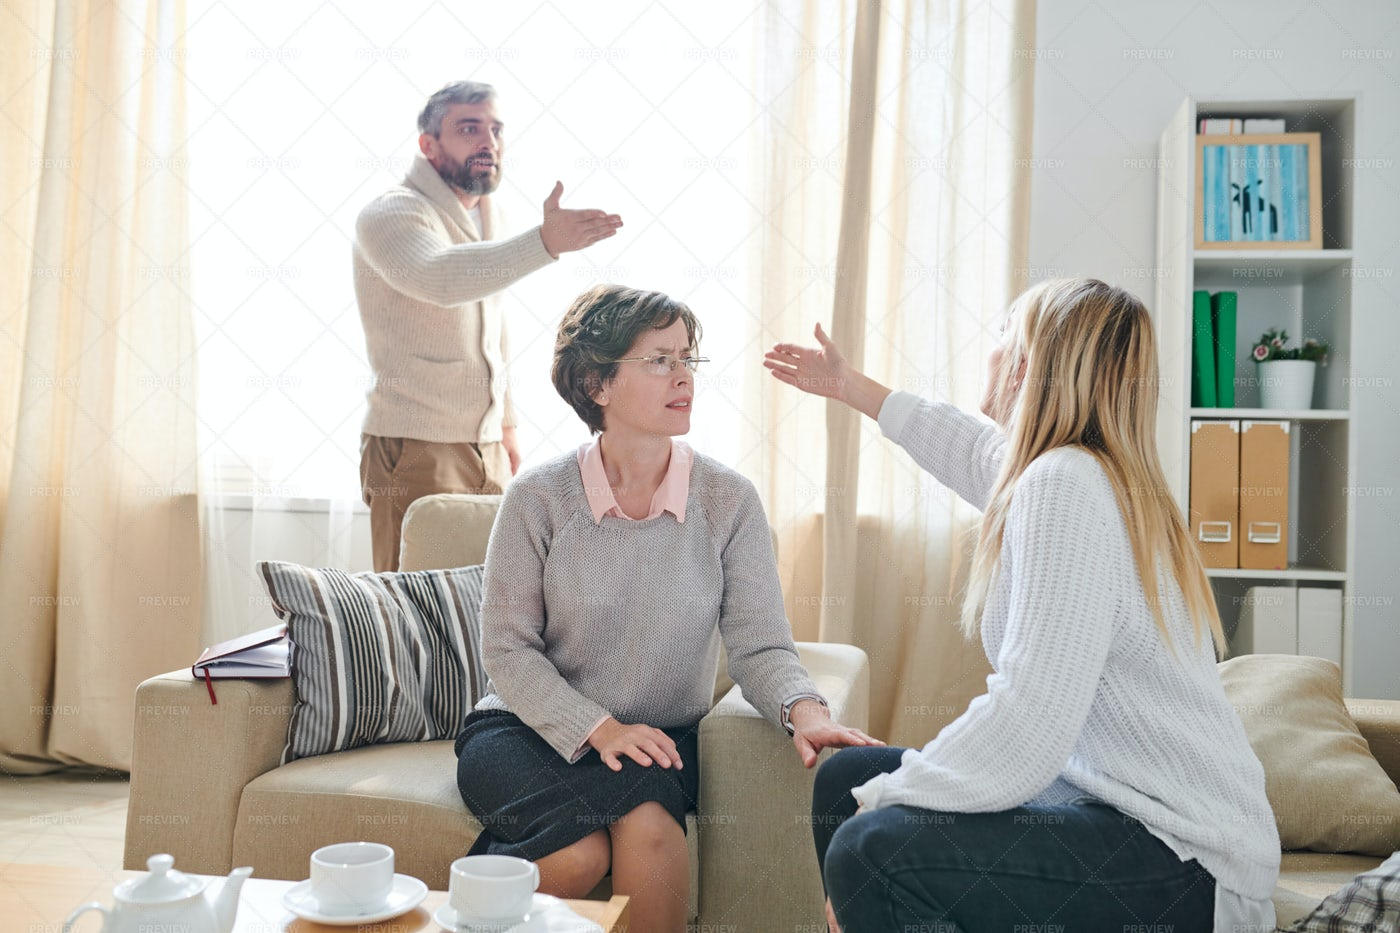 Family Psychologist Listening To...: Stock Photos